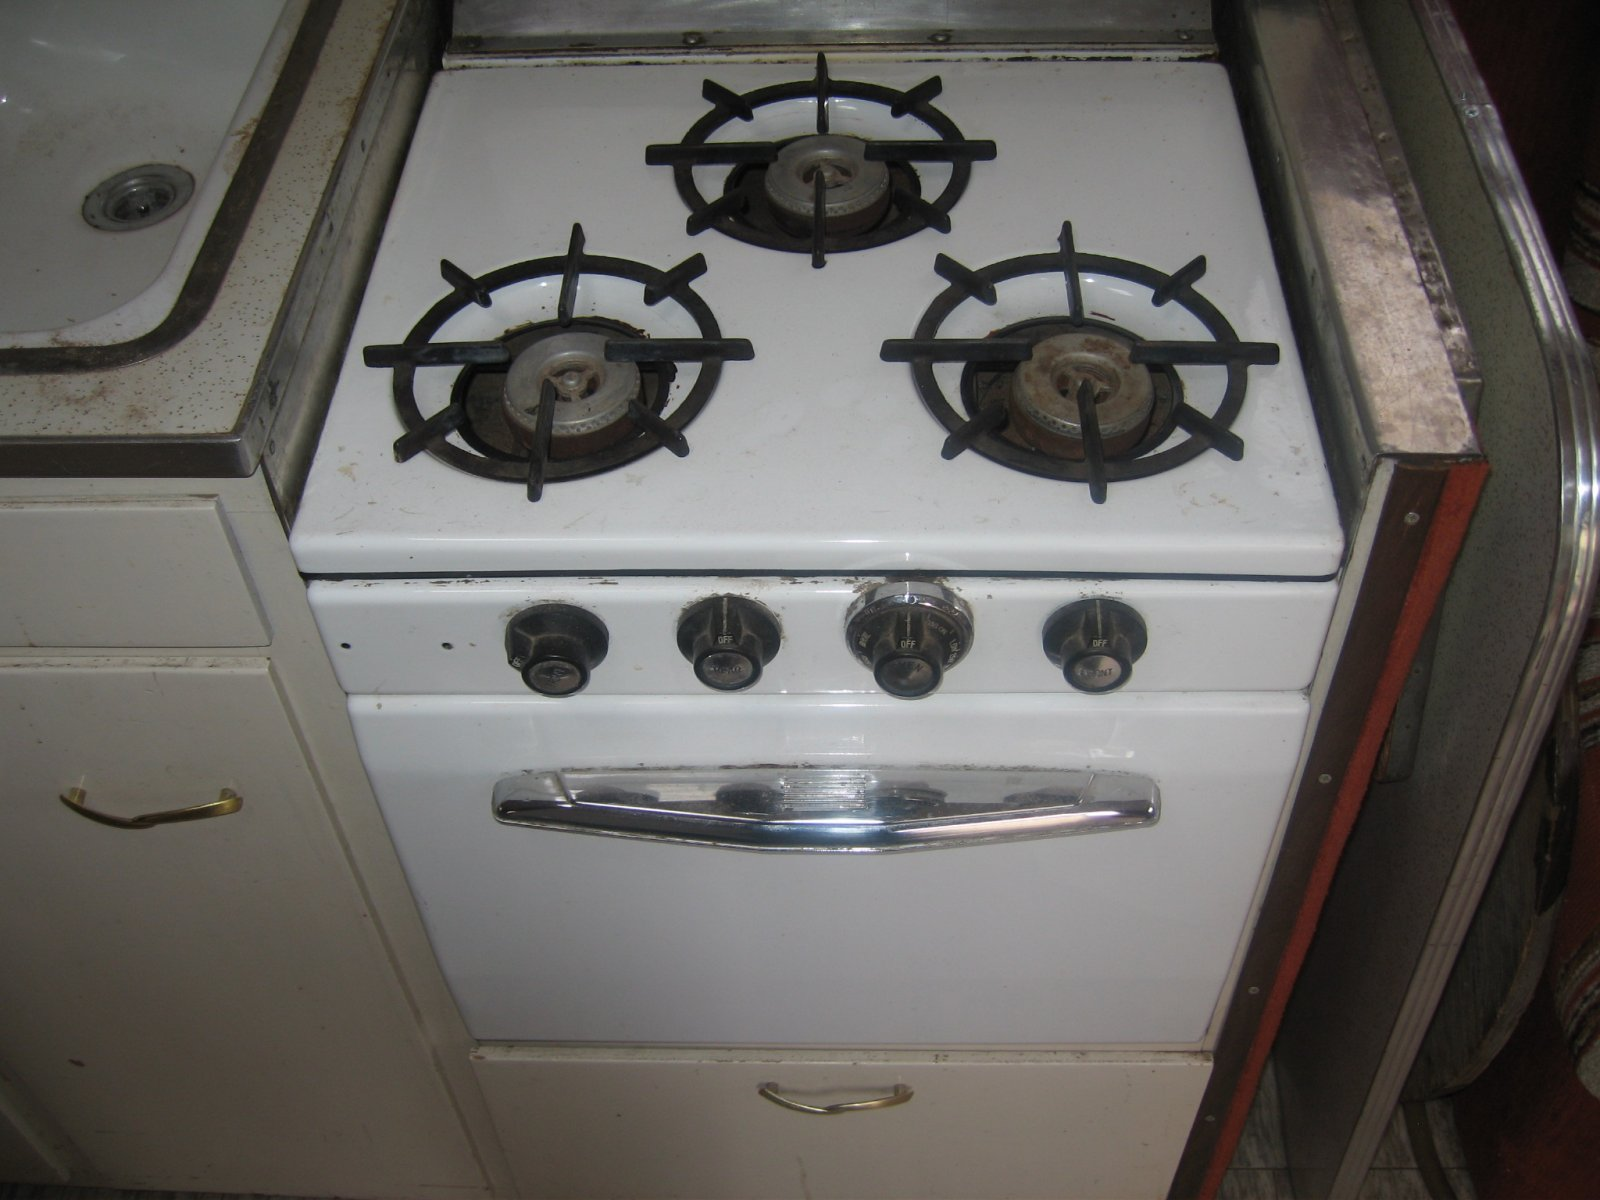 Click image for larger version  Name:Oven.jpg Views:162 Size:200.4 KB ID:63315